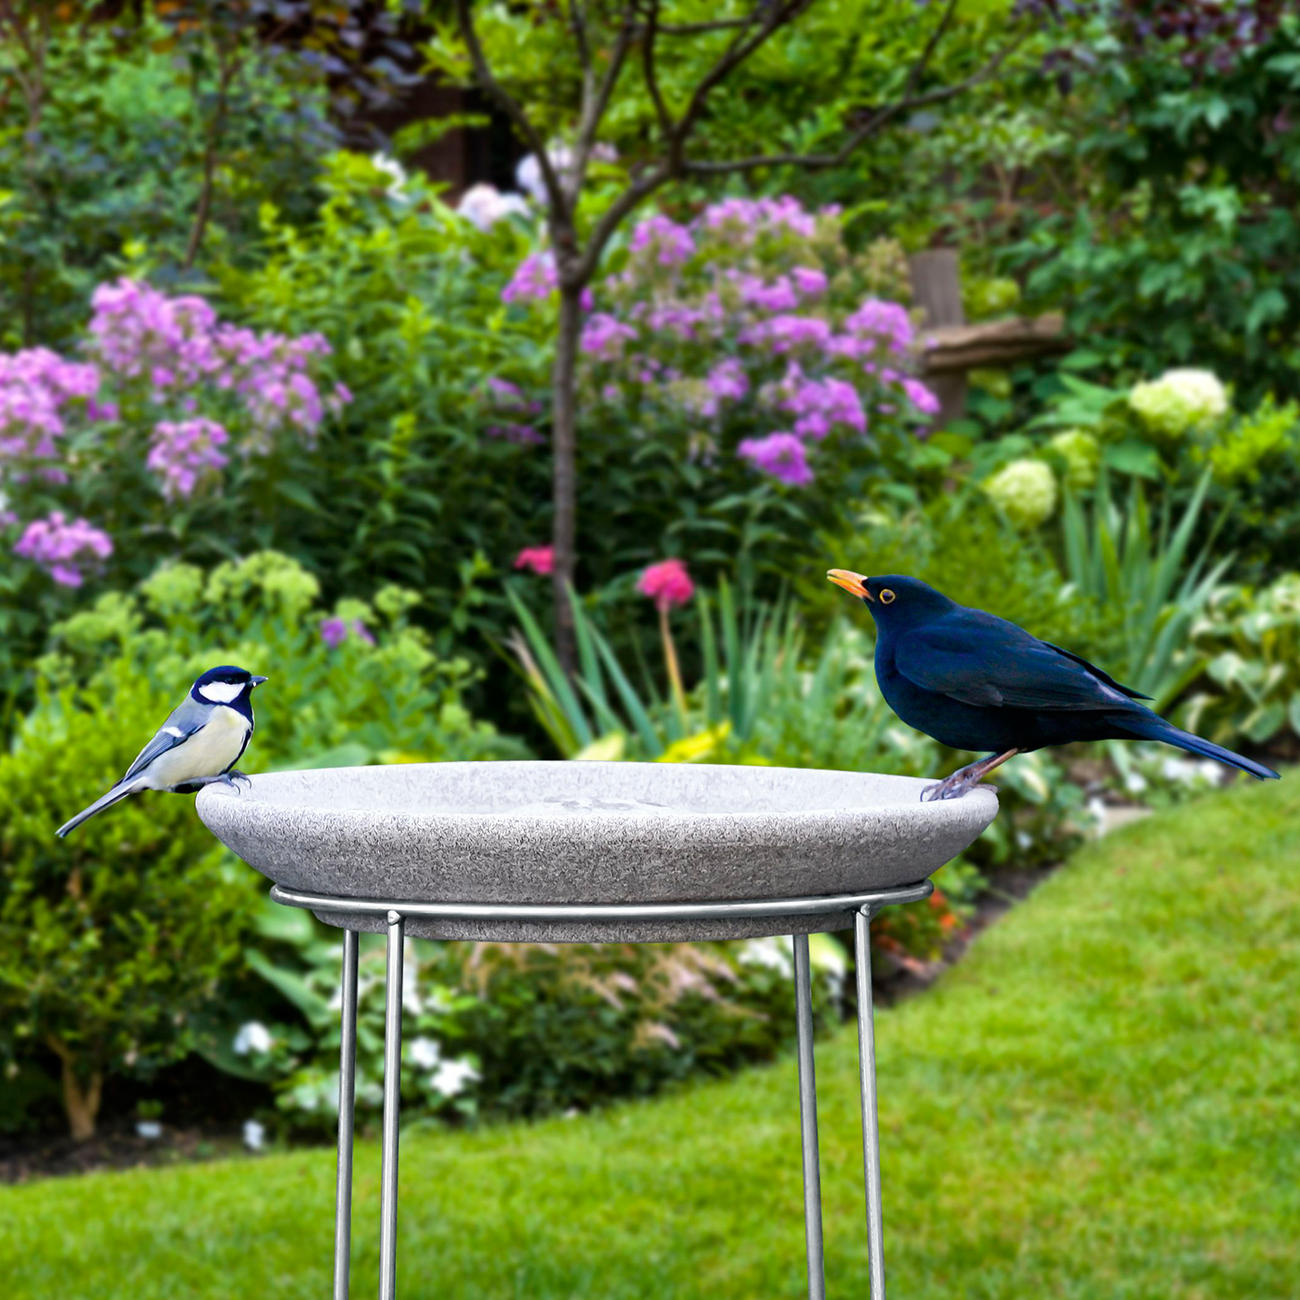 Granicium® Bird Bath With Stainless Steel Stand  Modern Design The 197